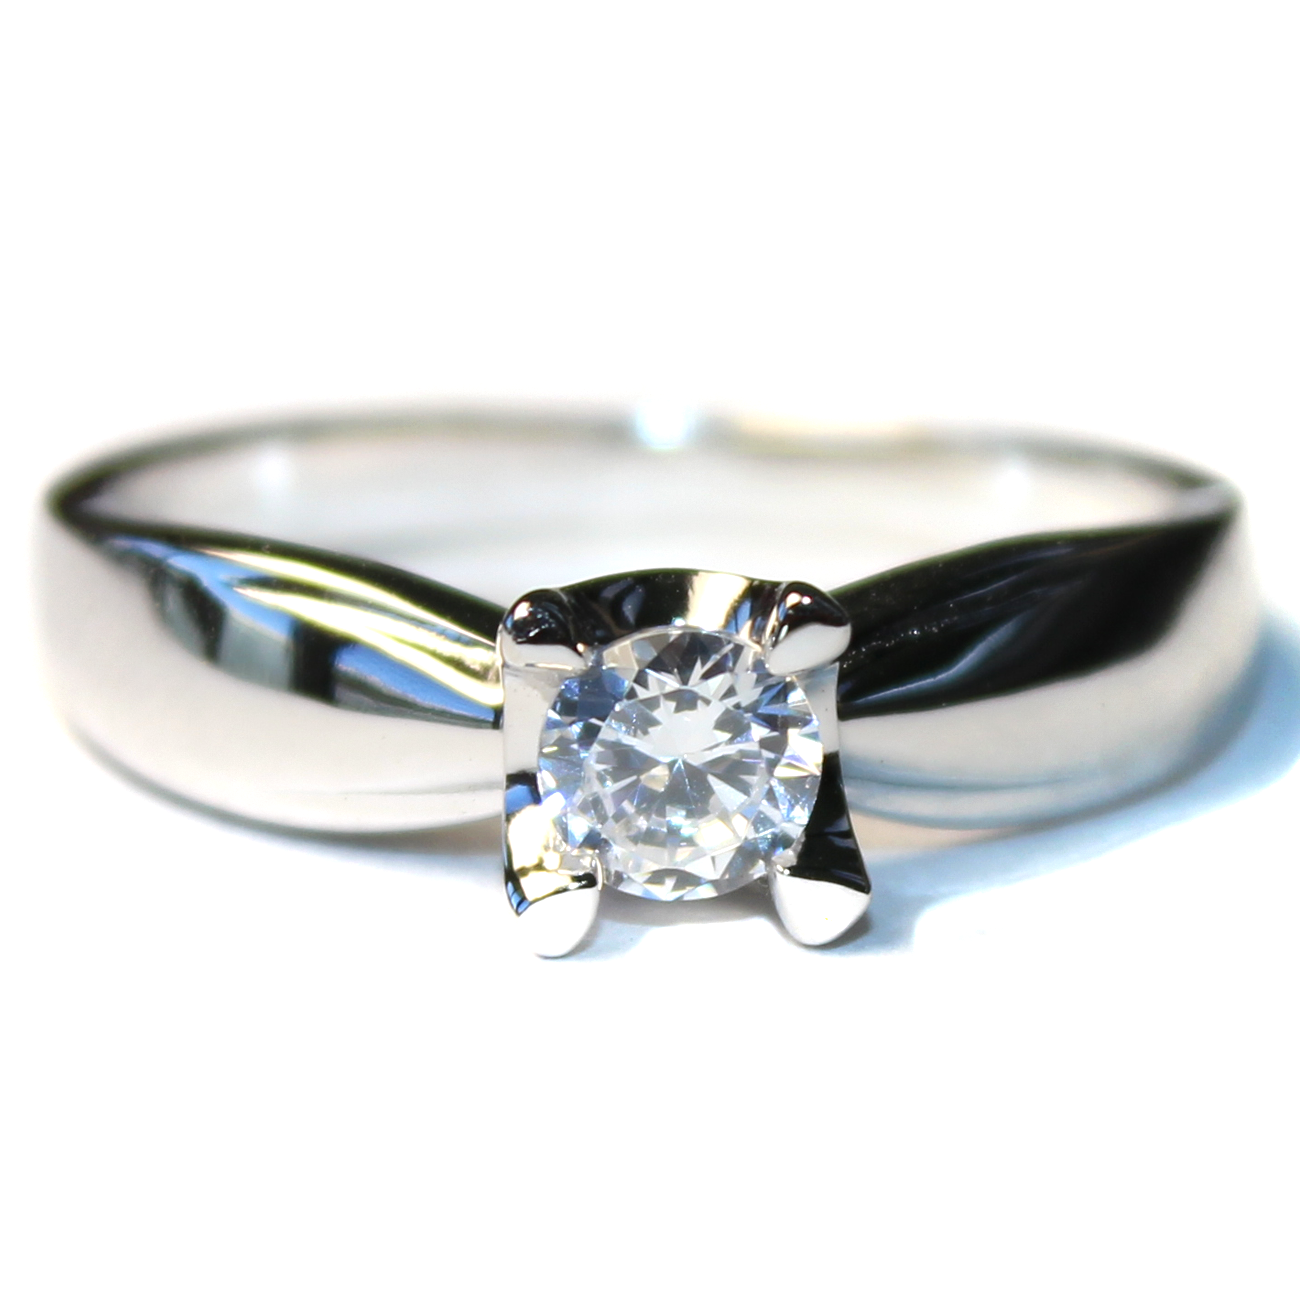 Diamond Promise Ring Silver Solitaire Stone Beautiful